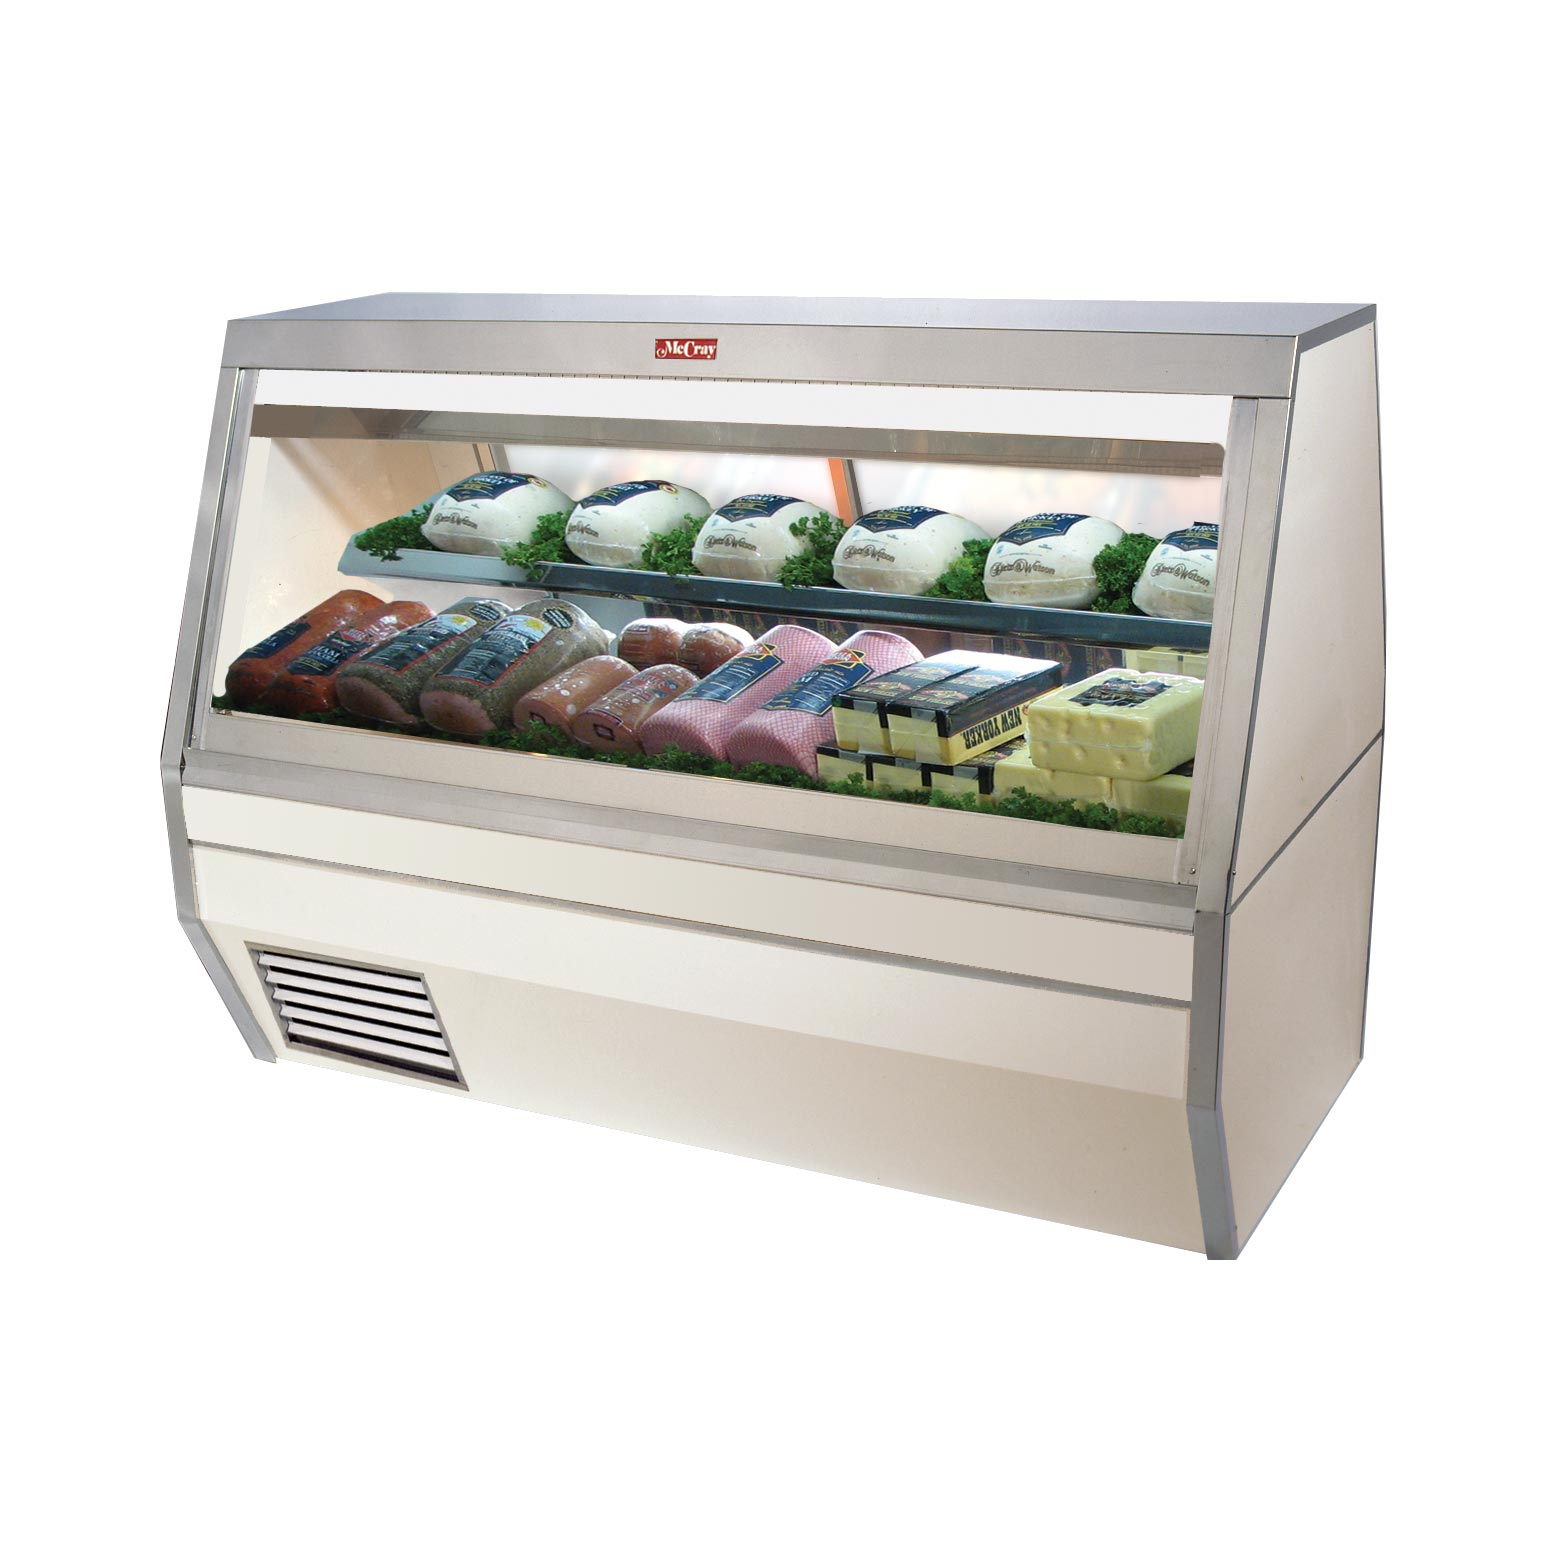 Howard-McCray SC-CDS35-8-S-LED display case, refrigerated deli